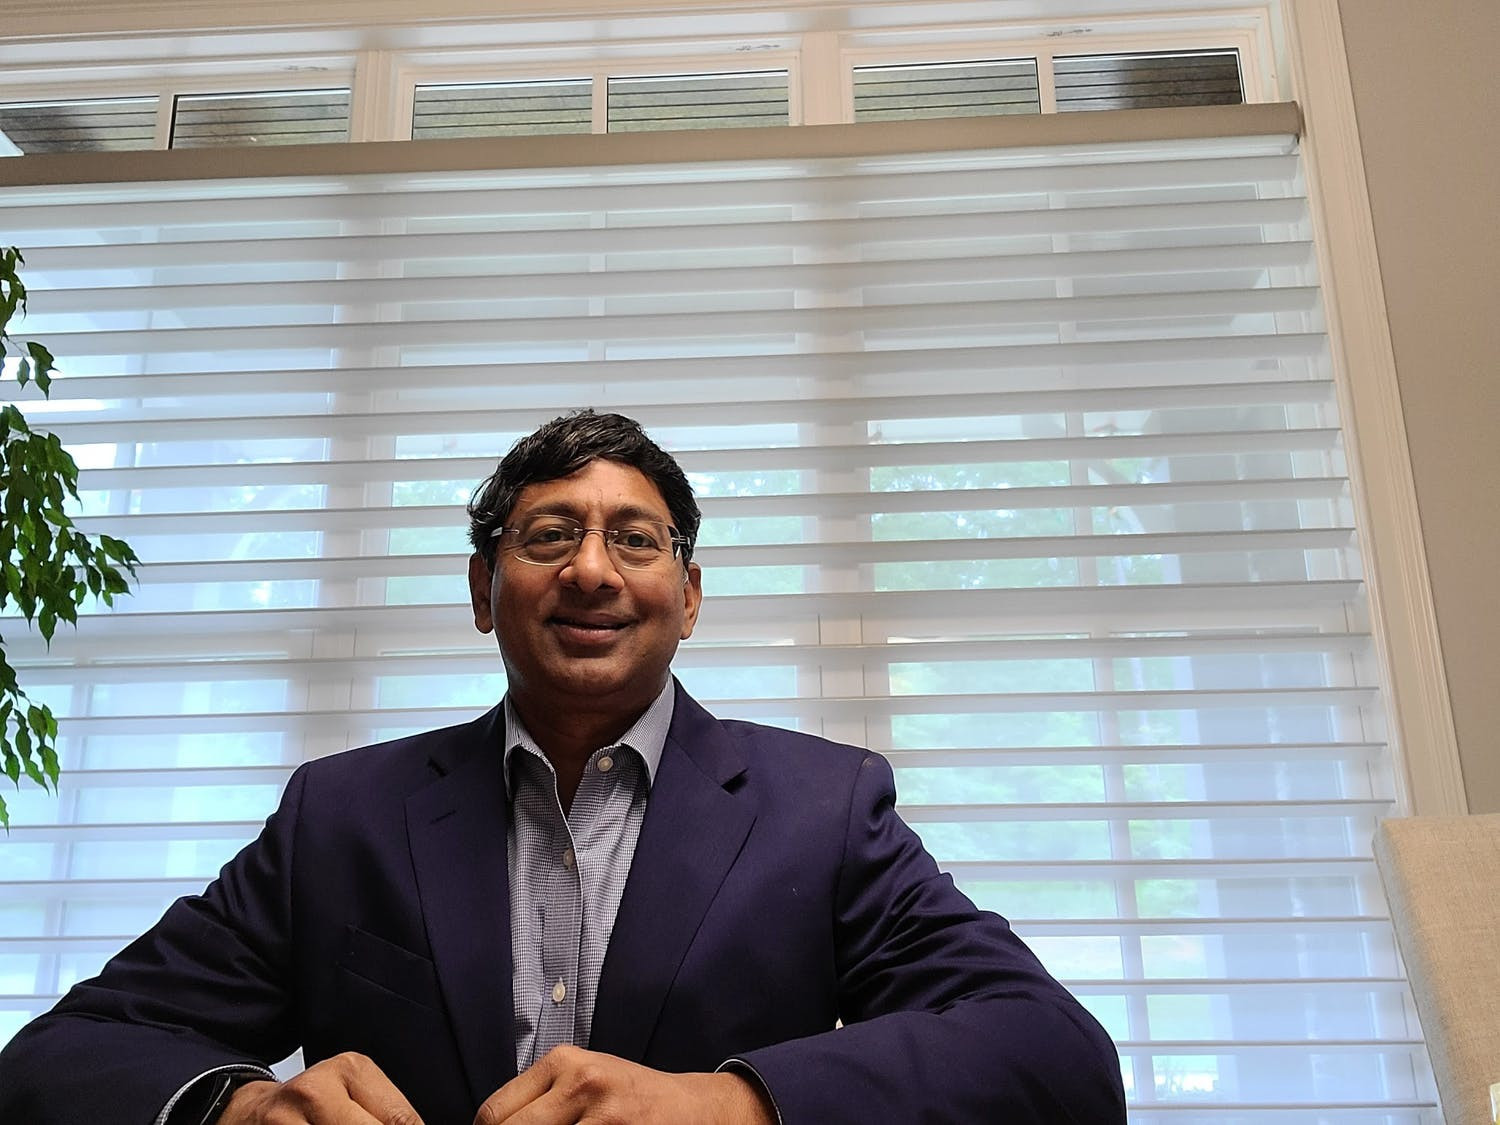 Ravi Bellamkonda is the Vinik dean of the Pratt School of Engineering. He is leaving Duke in June to become Provost and executive vice president at Emory University.